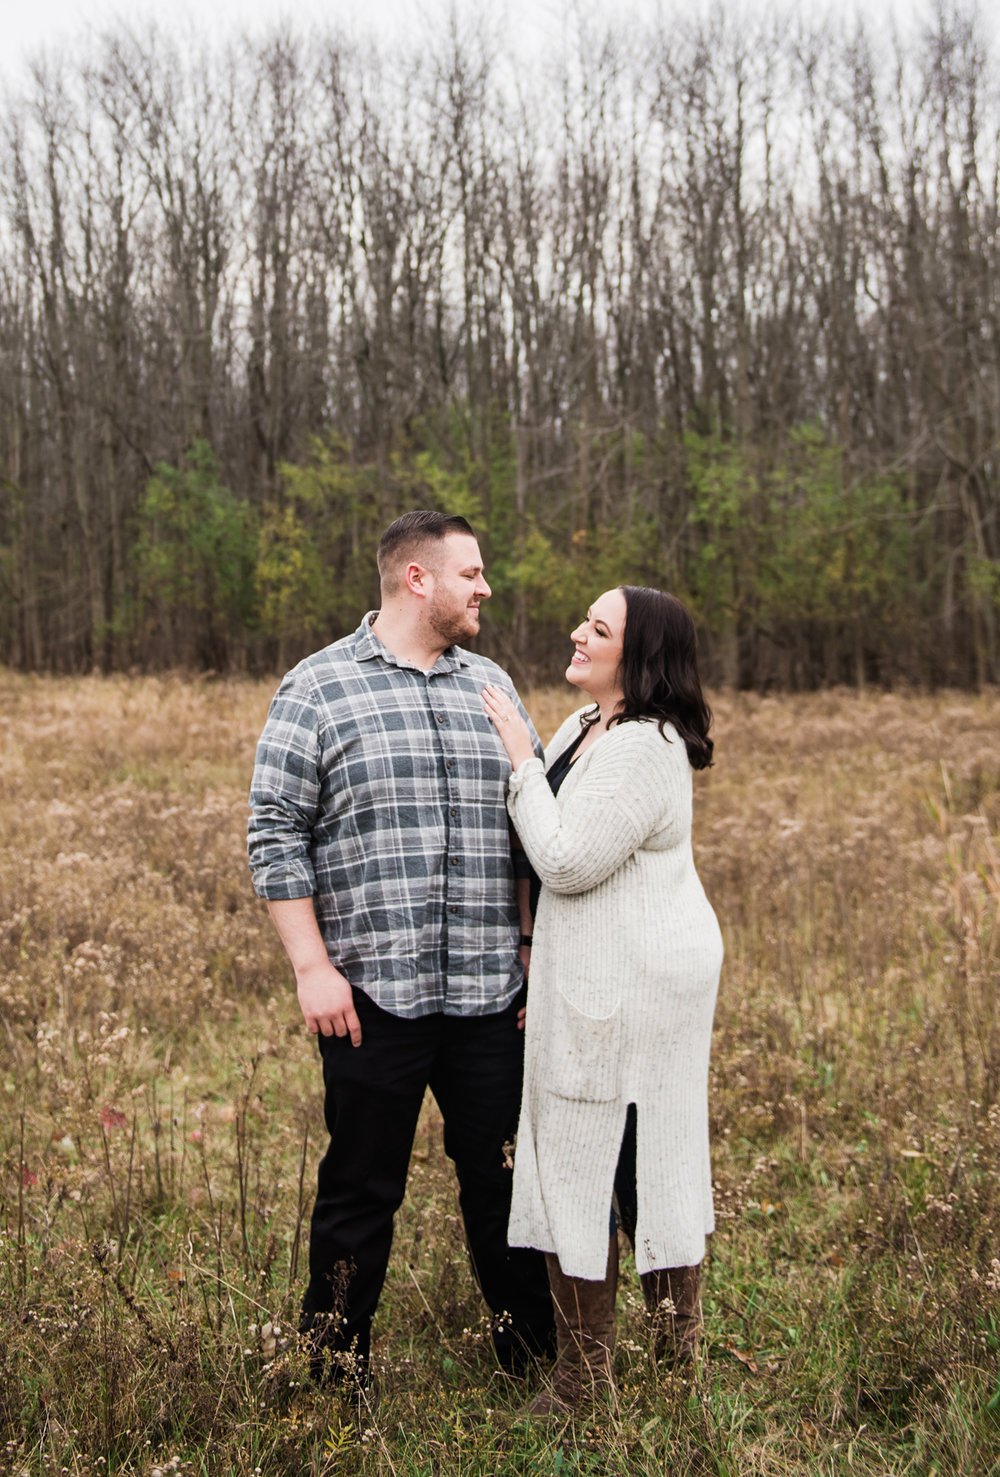 Tinker_Nature_Park_Rochester_Engagement_Session_JILL_STUDIO_Rochester_NY_Photographer_DSC_0449.jpg